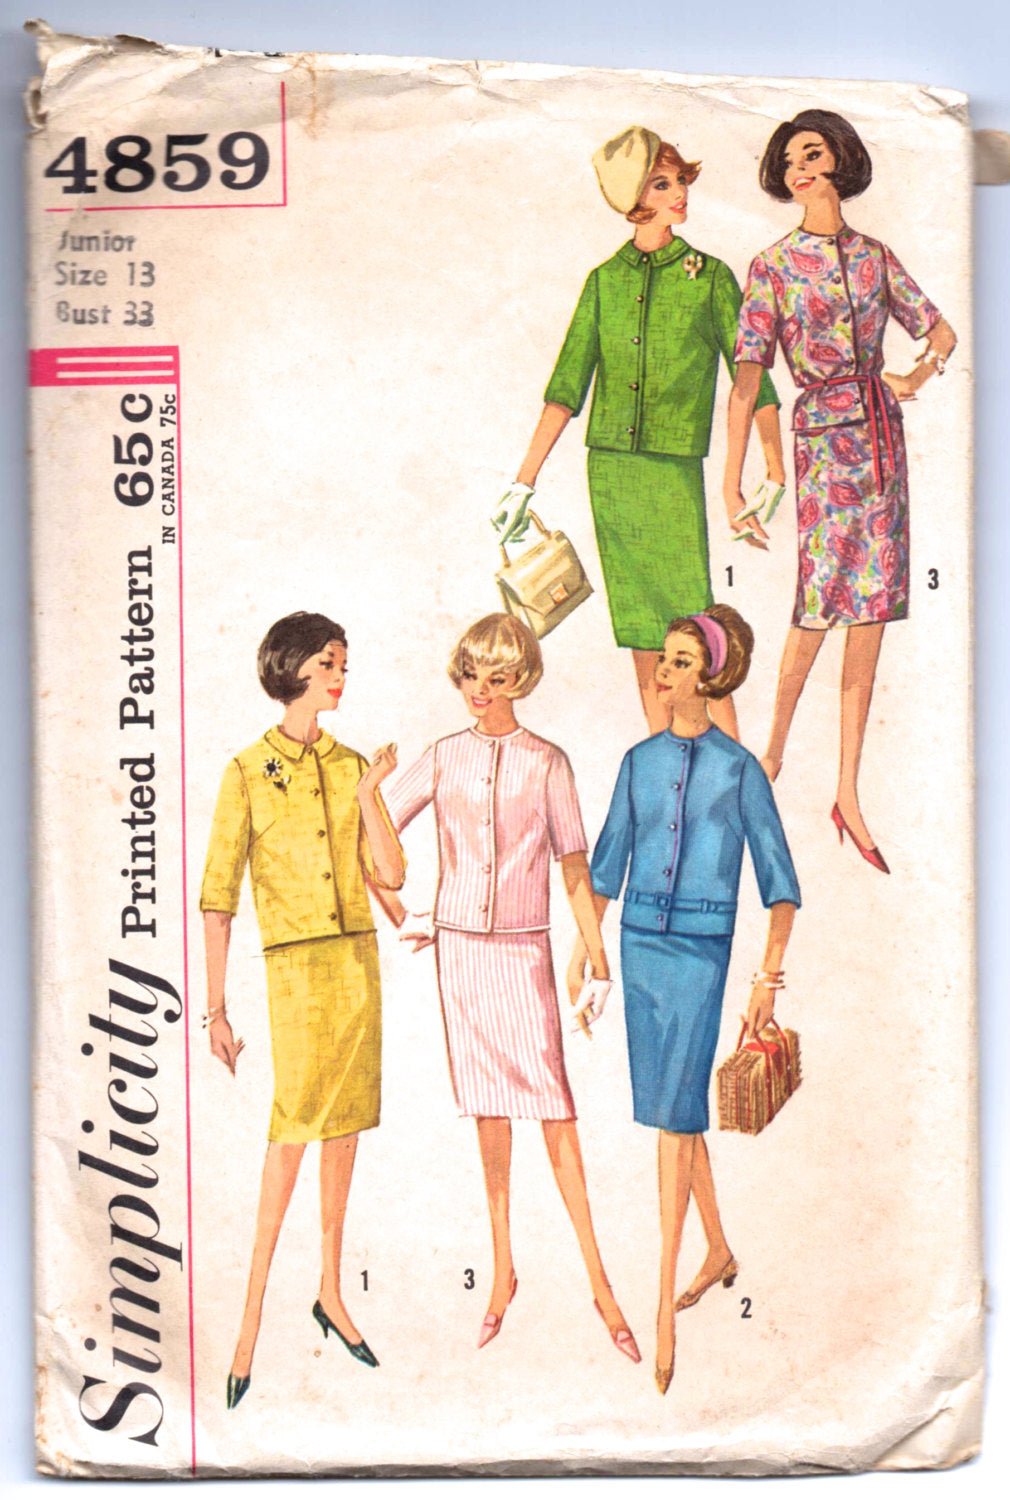 1960's Simplicity Jacket and Skirt Pattern - Bust 33